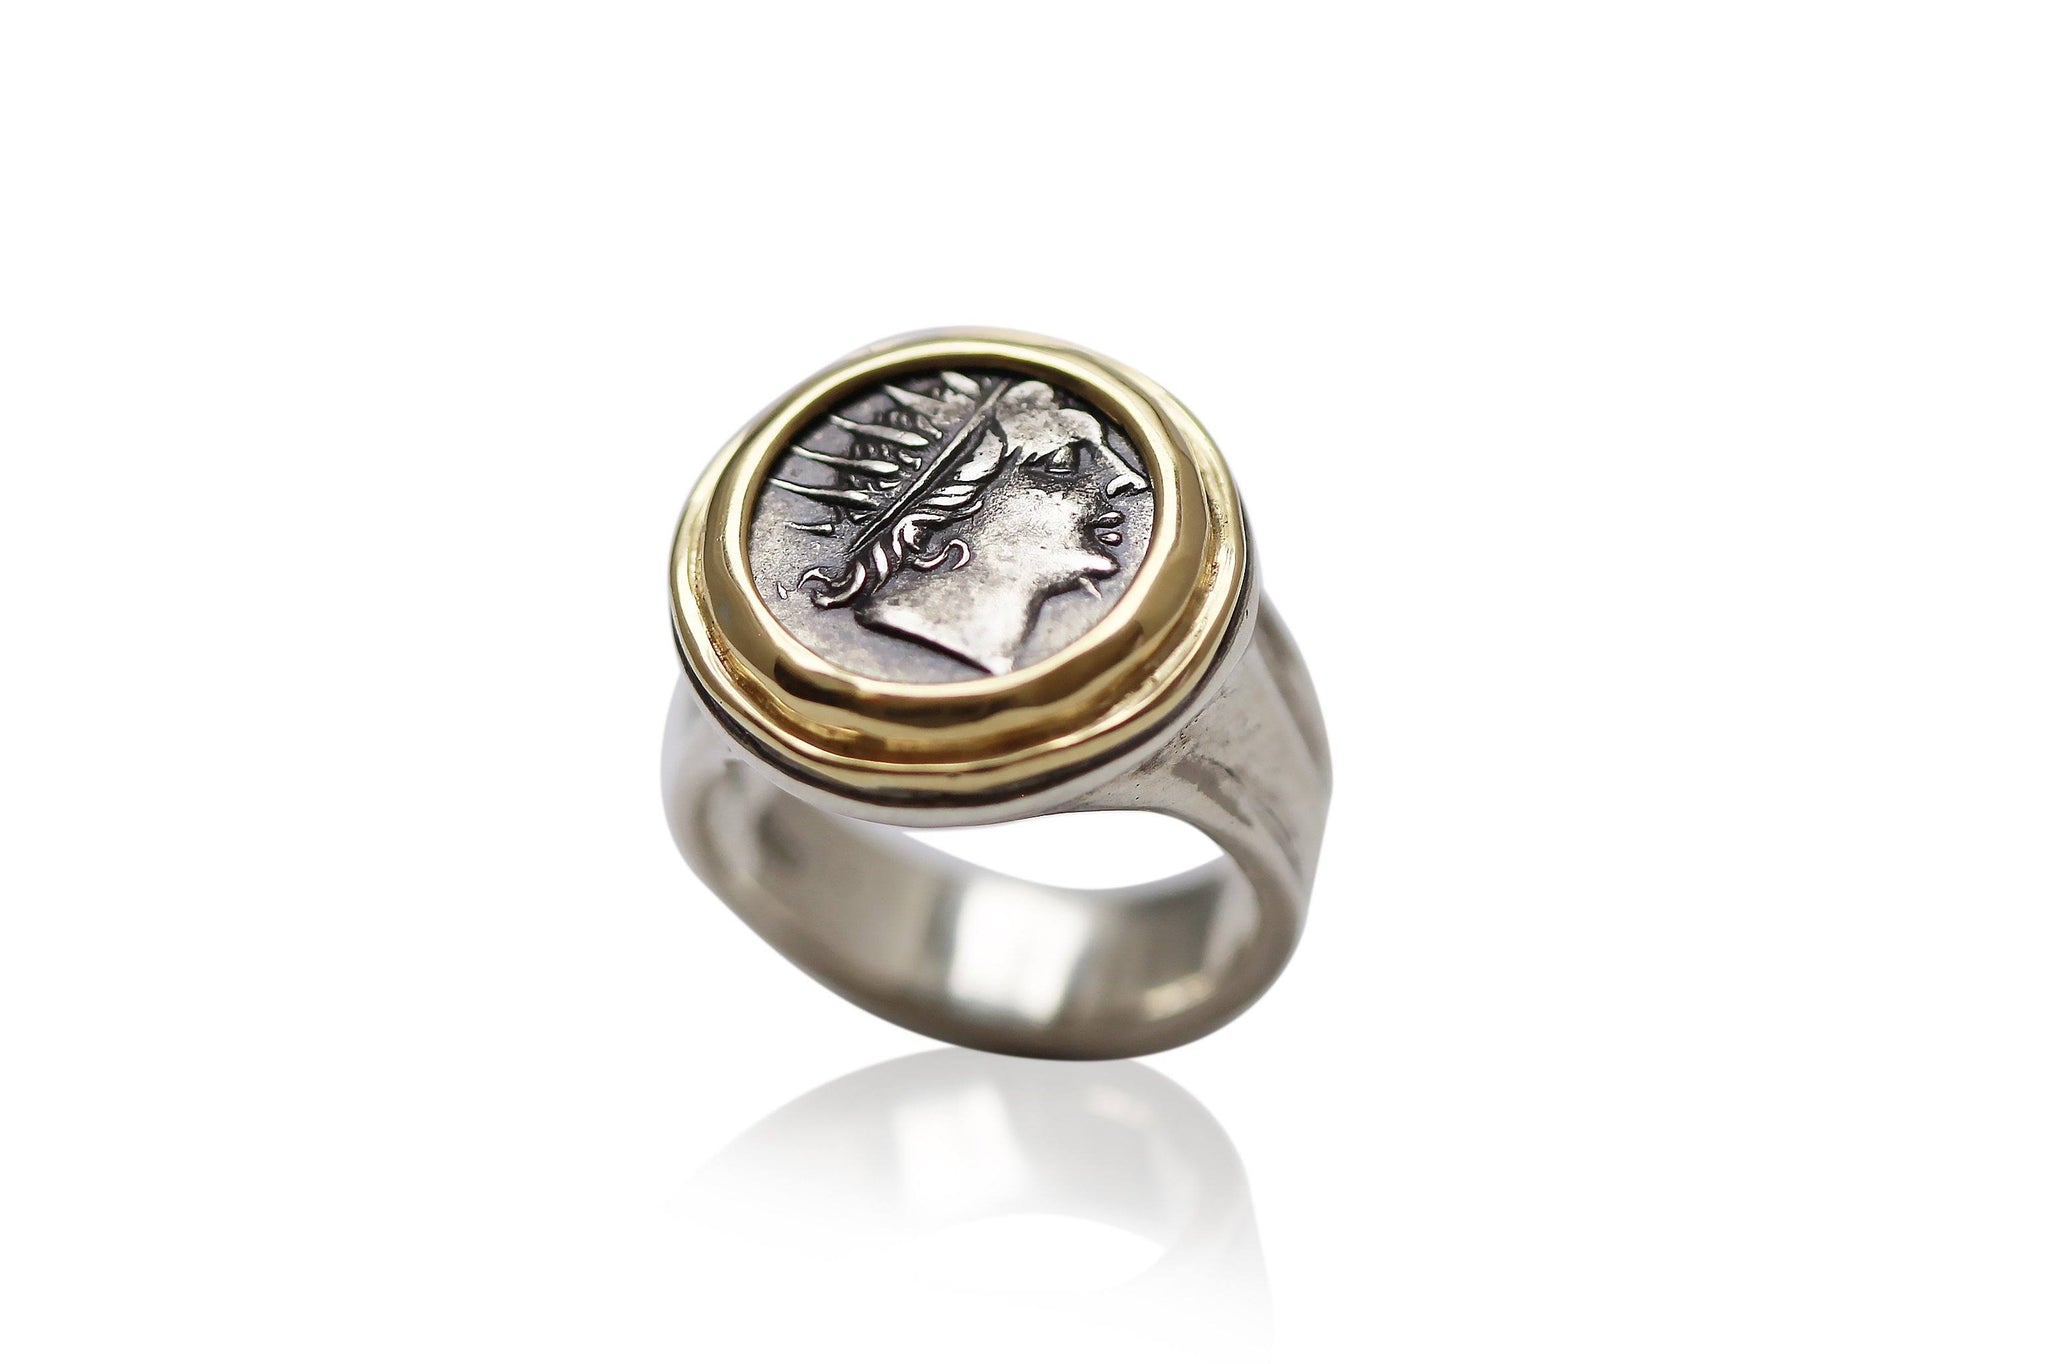 18K Gold Bezel, Silver Ring, Rhodes Drachm, Helios, 6753 - Erez Ancient Coin Jewelry, ancient coin jewelry, men jewelry, genuine ancient coins, made in the US